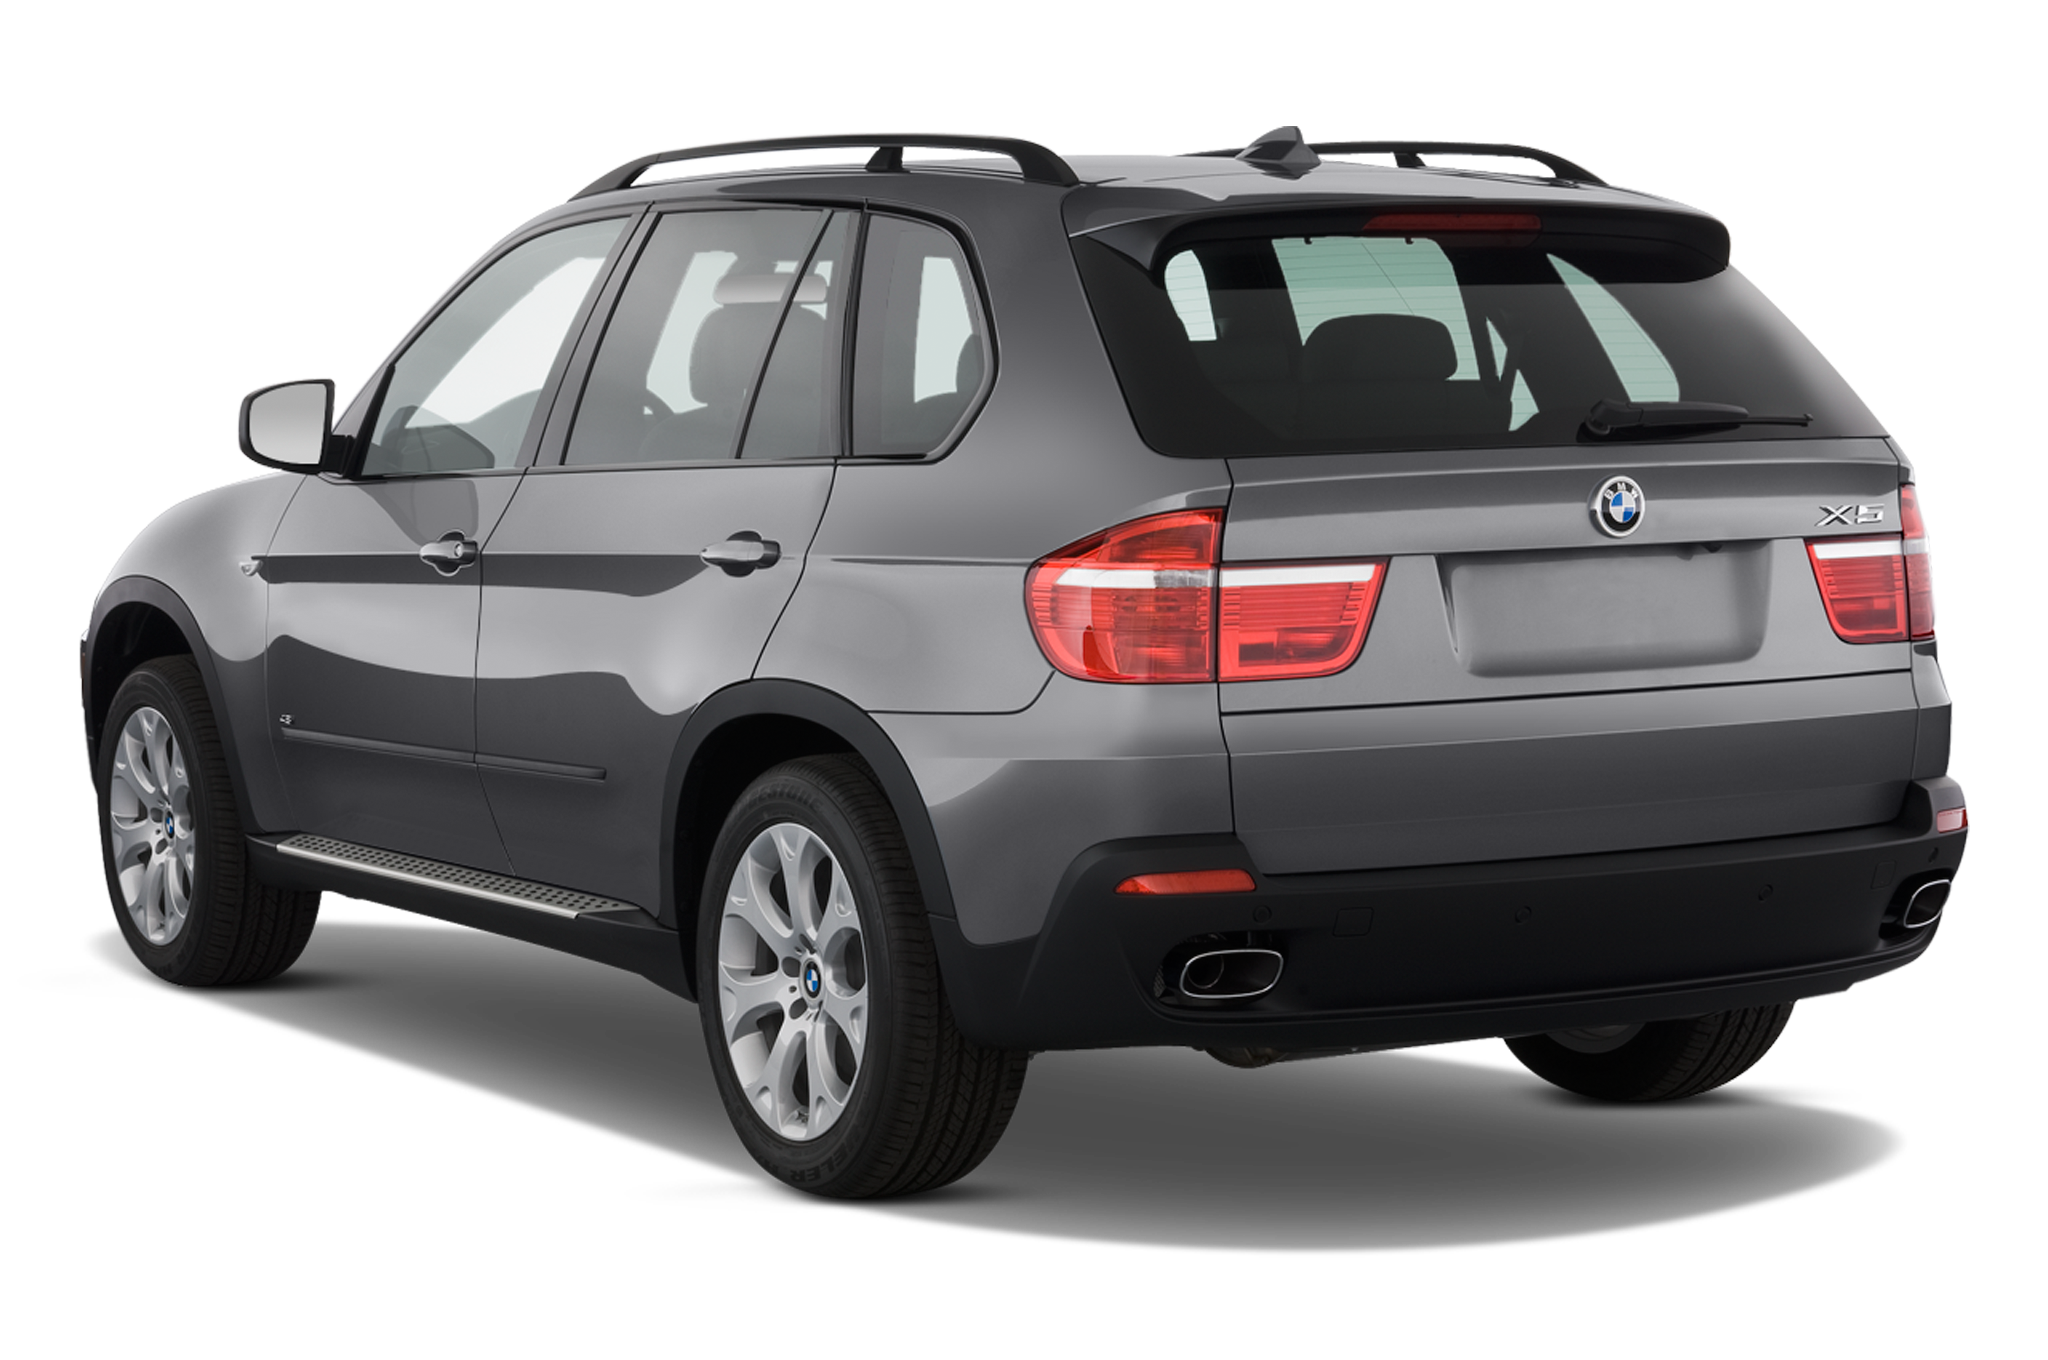 2010 bmw x5 xdrive35d bmw luxury crossover suv review automobile magazine. Black Bedroom Furniture Sets. Home Design Ideas